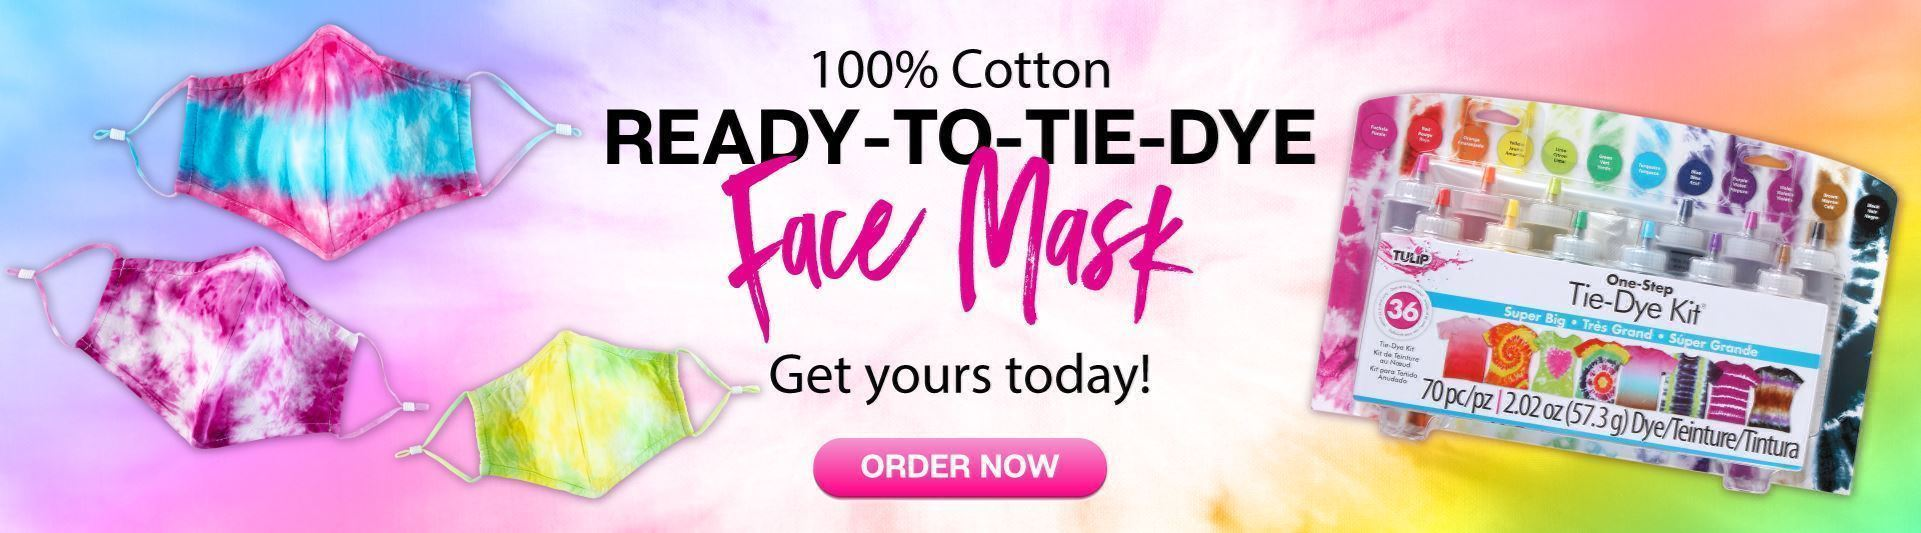 Image 100% Cotton Ready-to-Tie-Dye Face Mask